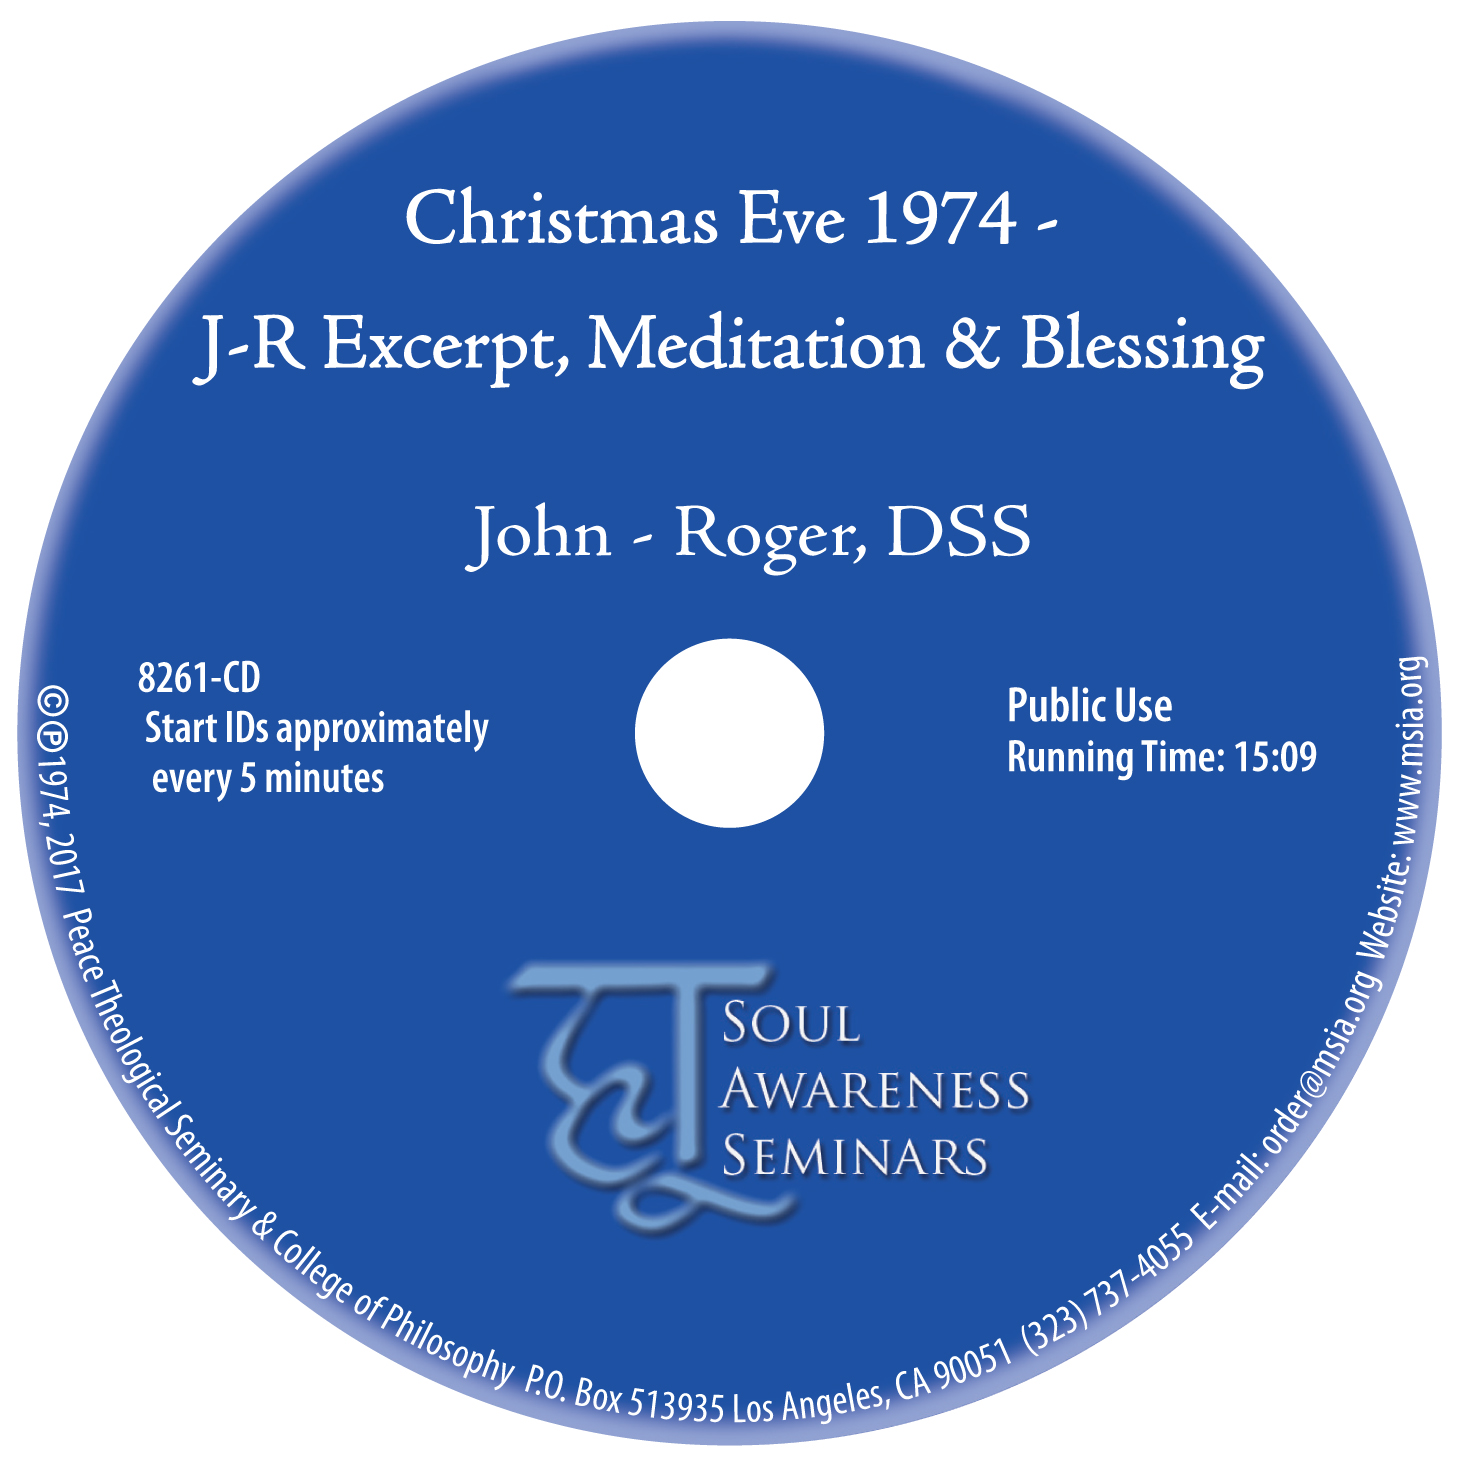 *NEW* Christmas Eve 1974 - J-R Excerpt, Meditation & Blessing MP3